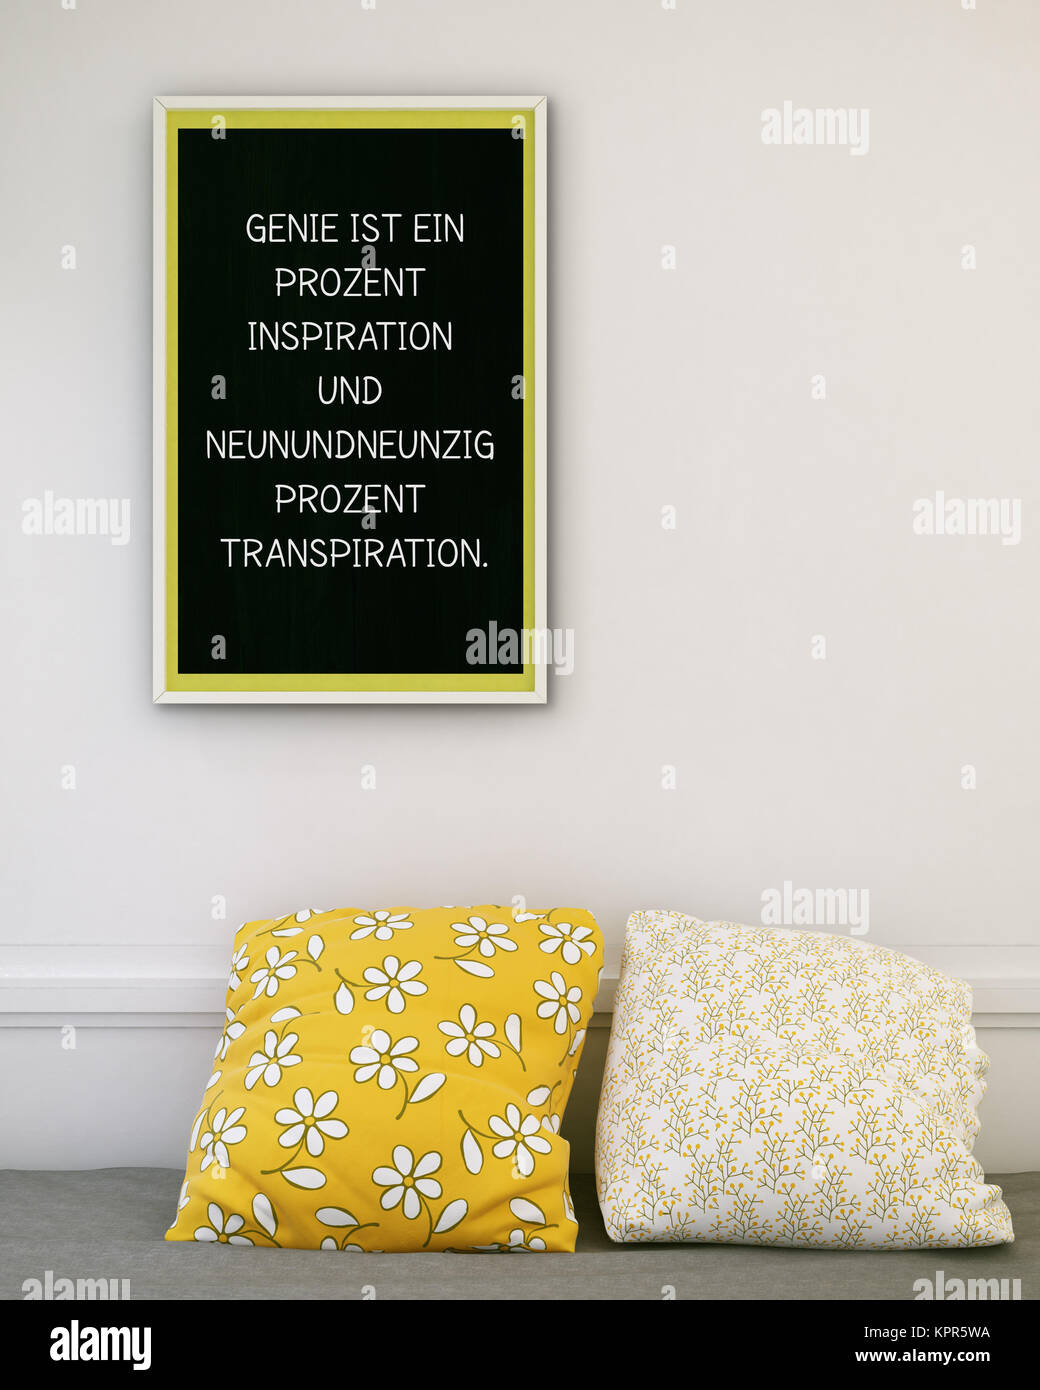 Inspirational motivating quote on picture frame stock photo inspirational motivating quote on picture frame jeuxipadfo Gallery